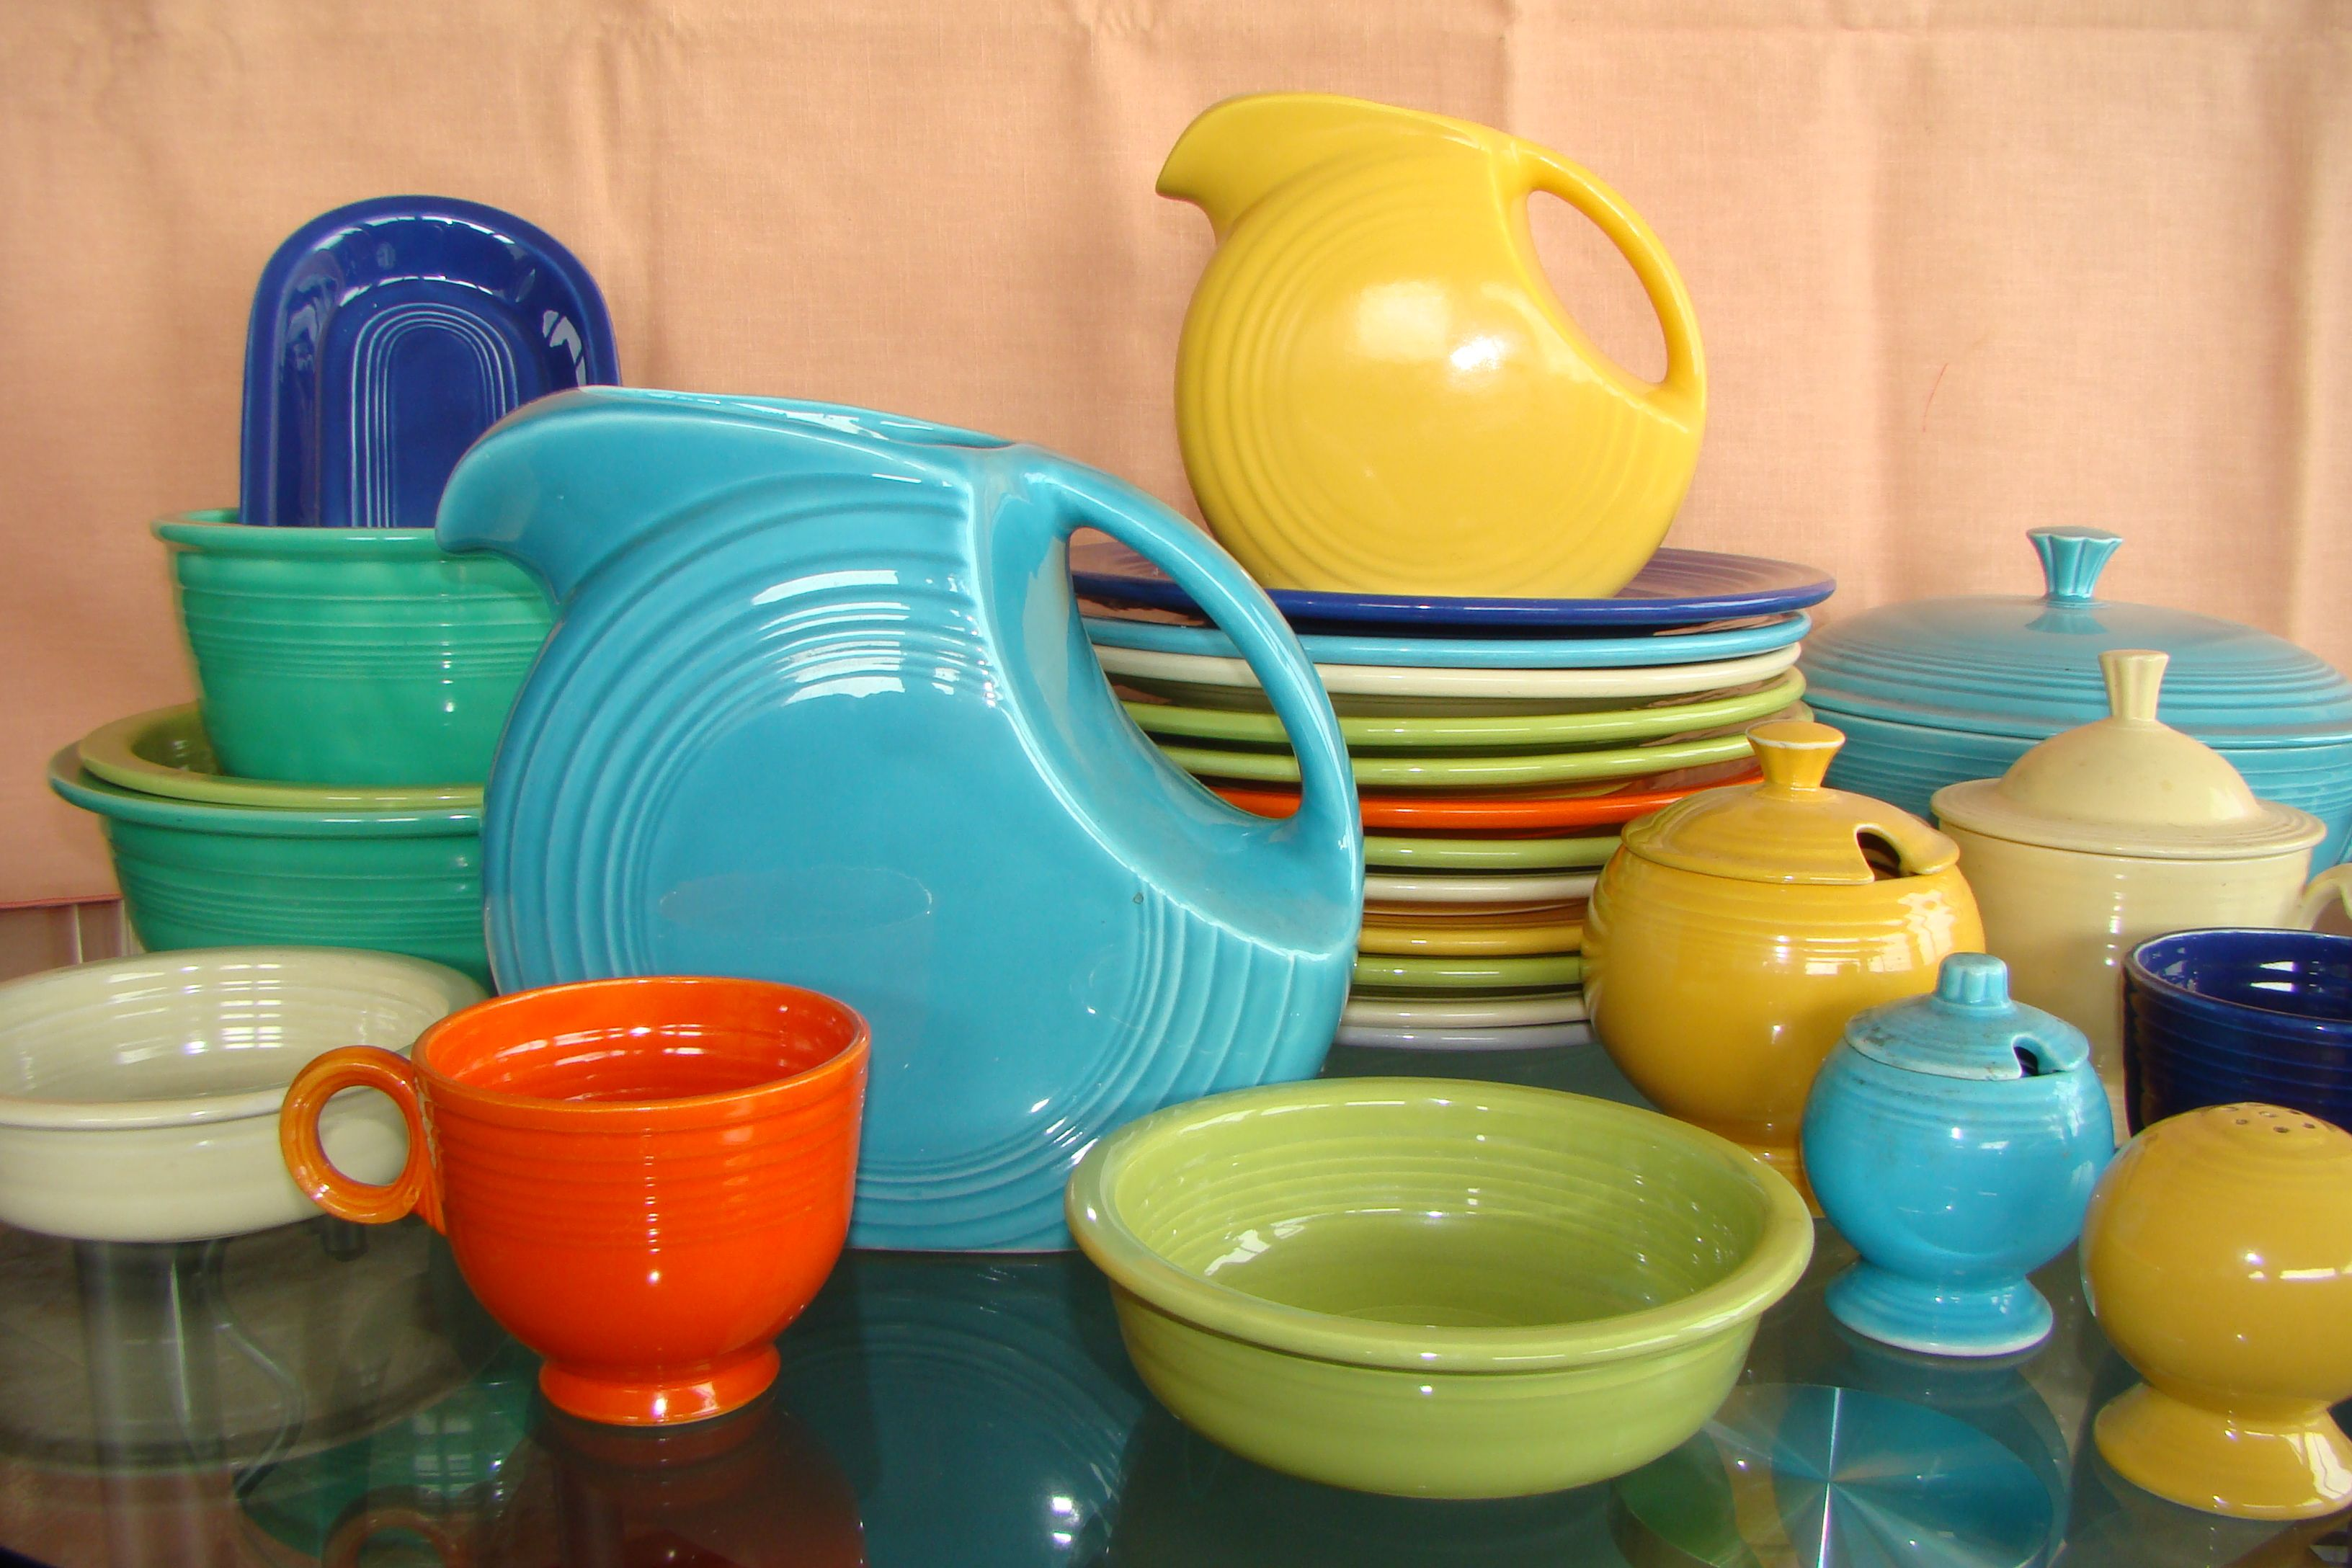 Fiesta Ware Makes You Feel Like Having A Party Woolworth